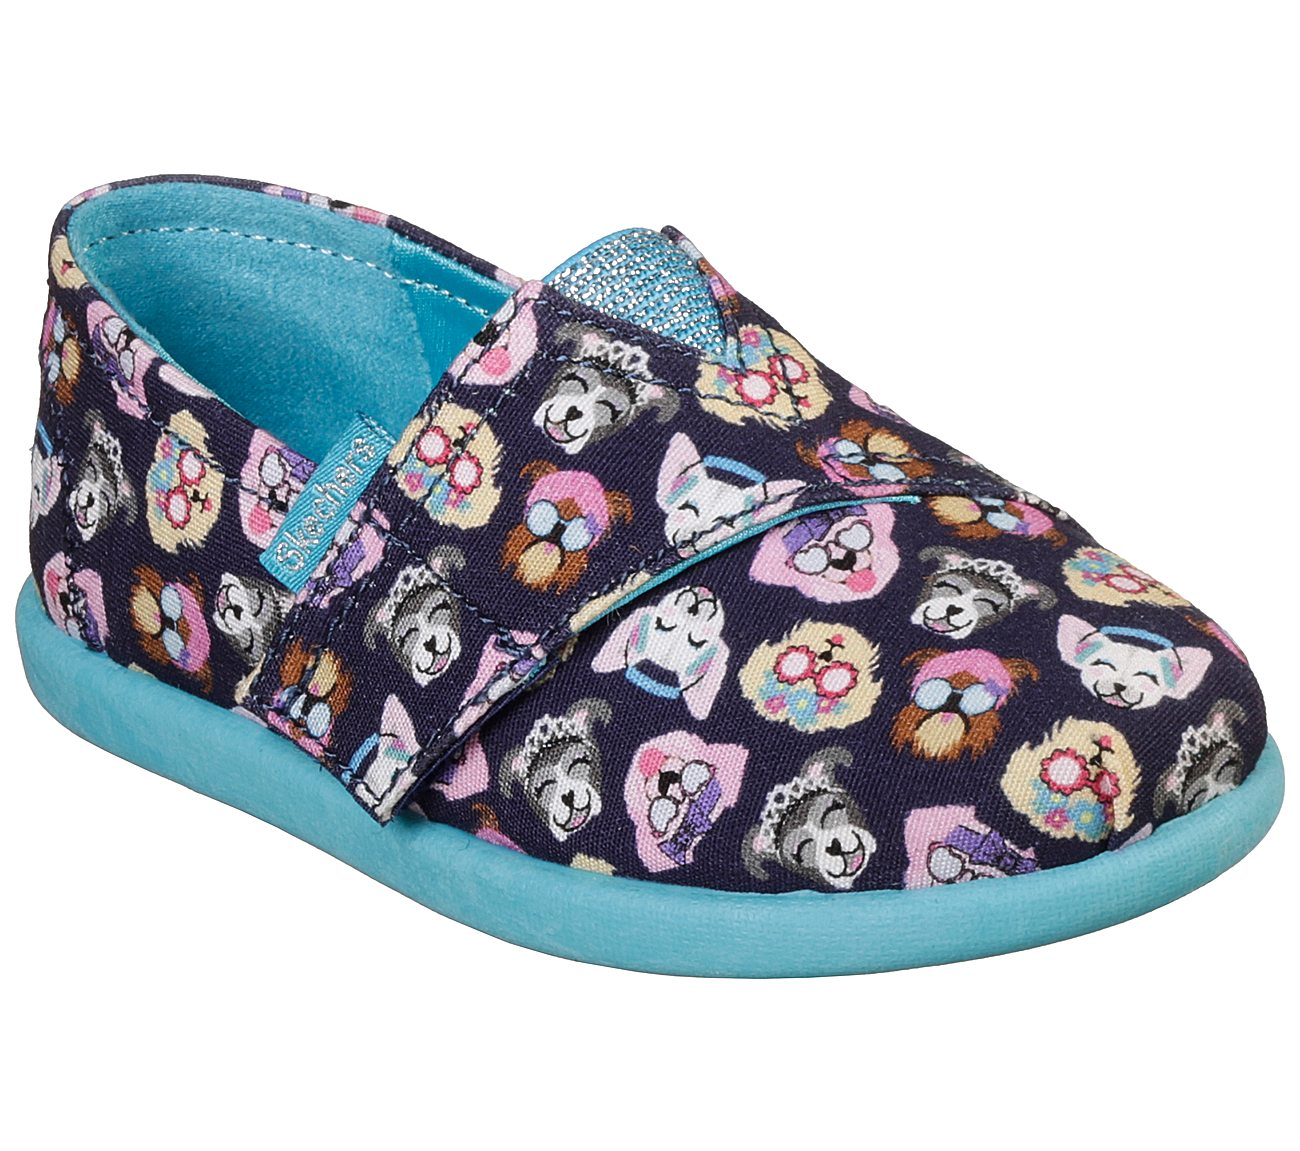 premium selection online shop hot new products LIL BOBS Solestice 2.0 - Puppy Party